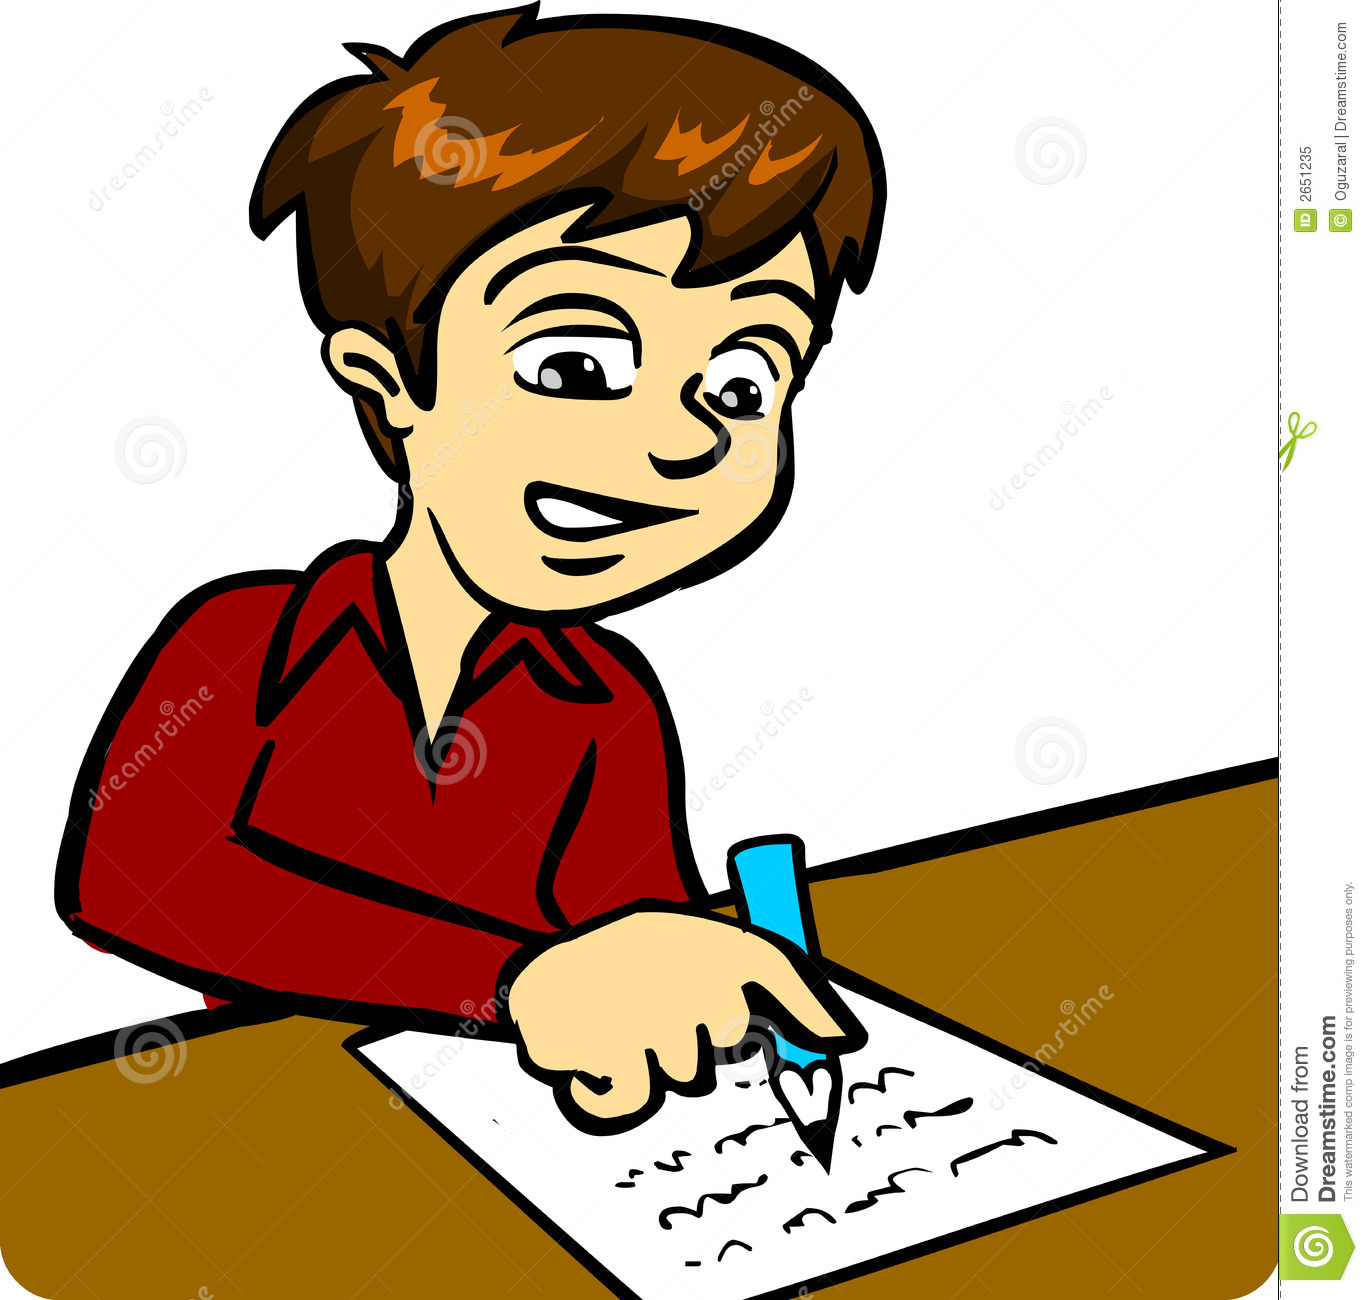 clip art library download Boy writing clipart. Free and girl download